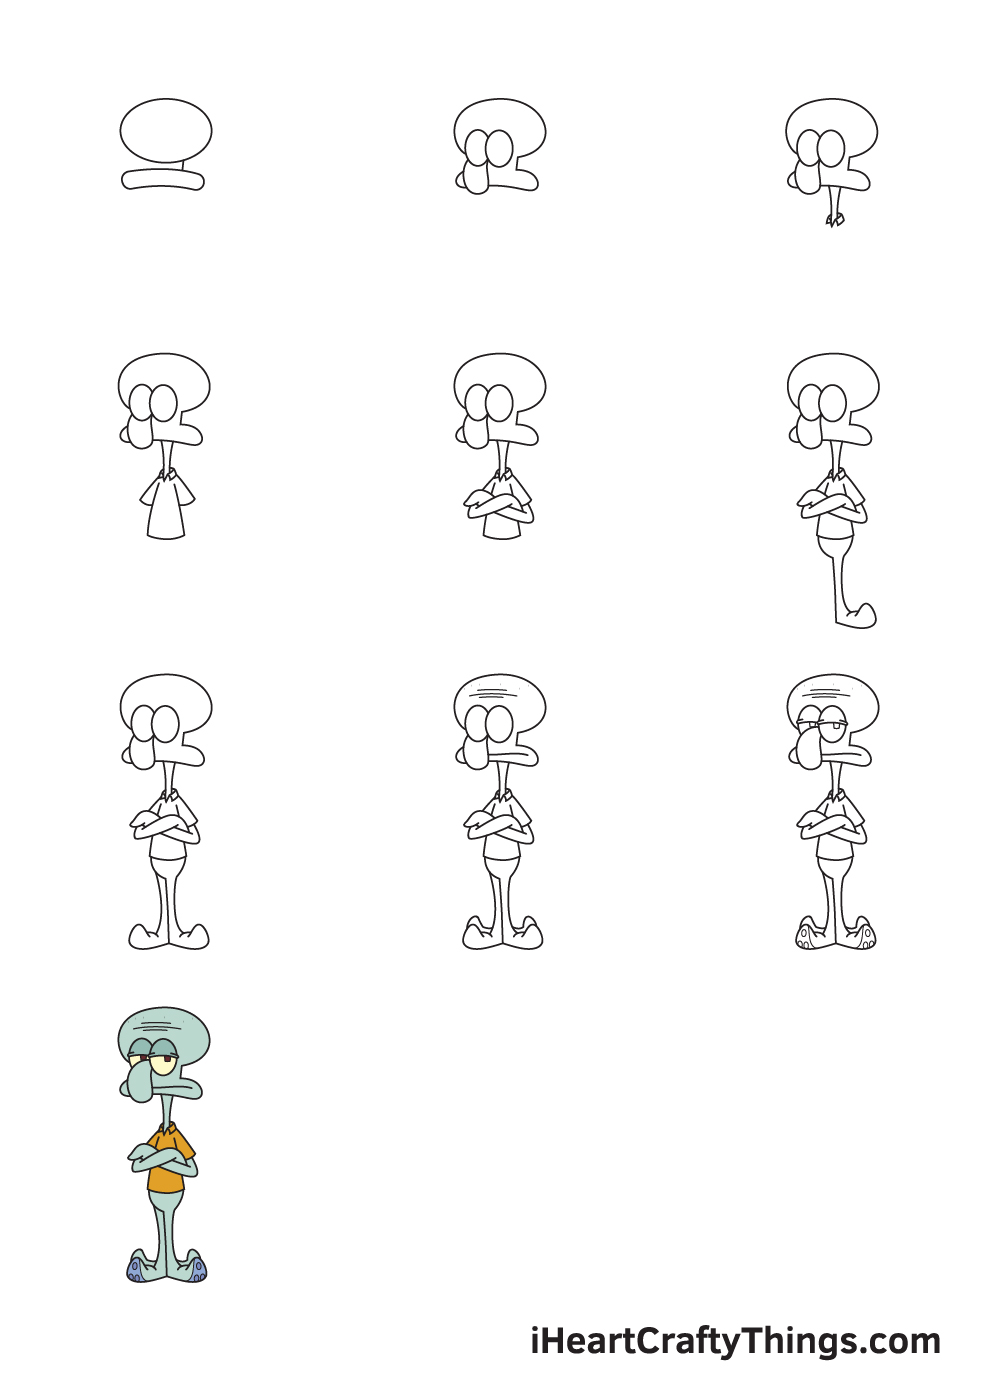 How to Draw Squidward in 9 steps